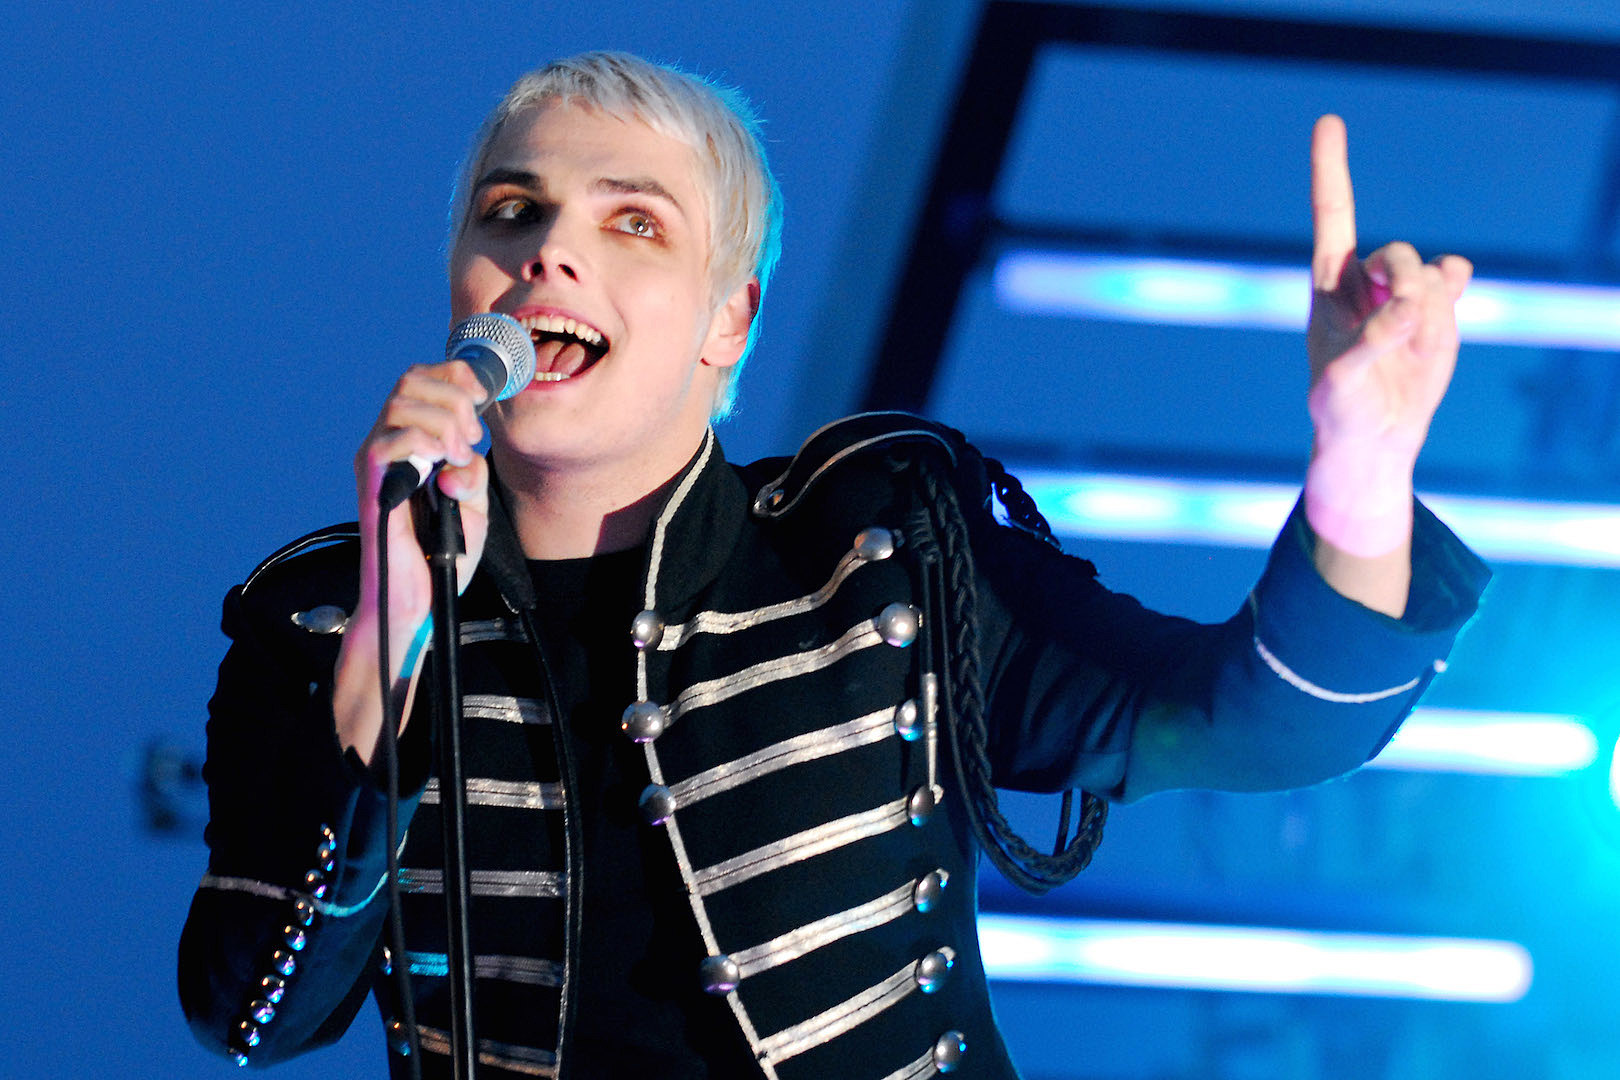 Every My Chemical Romance Song Ranked From Worst to Best